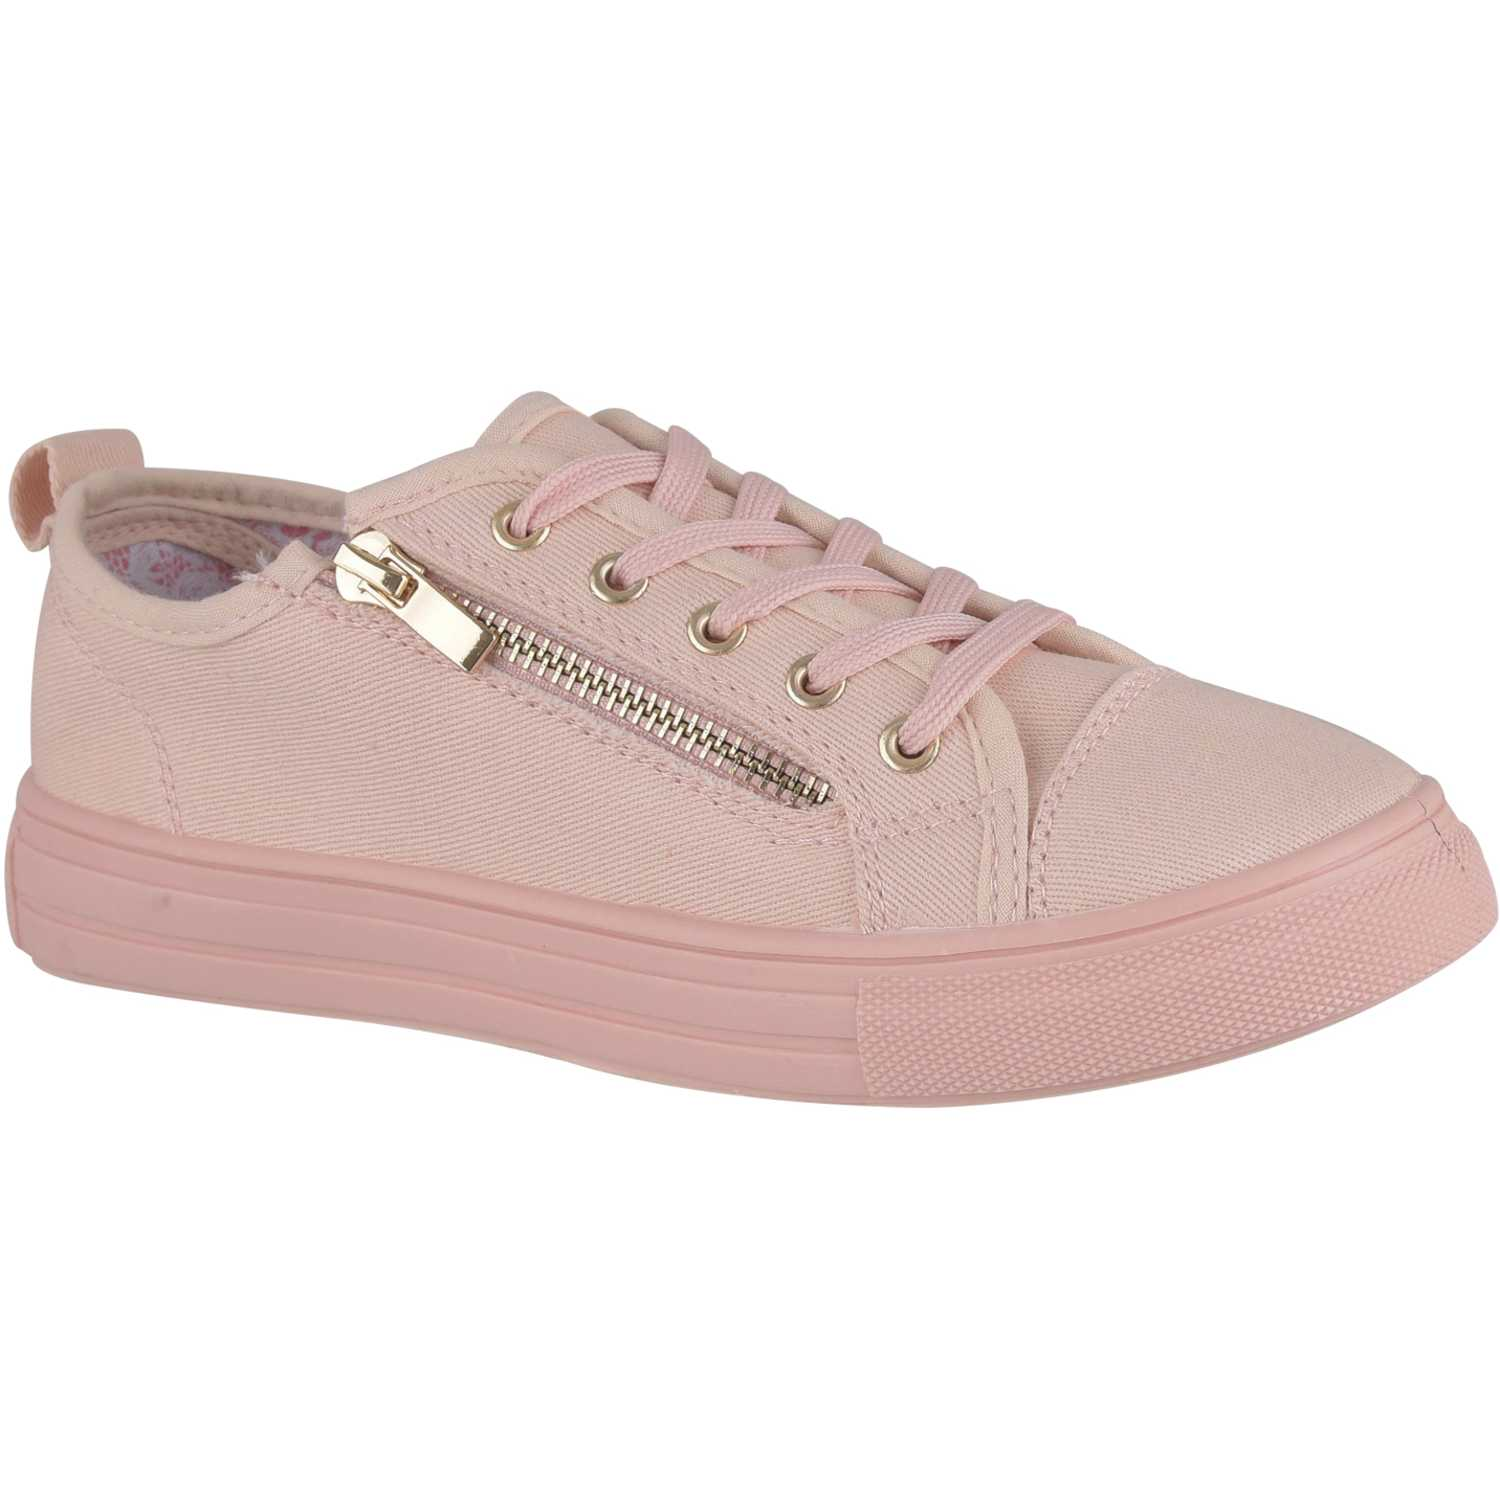 Platanitos zc 28 Rosado Zapatillas Fashion